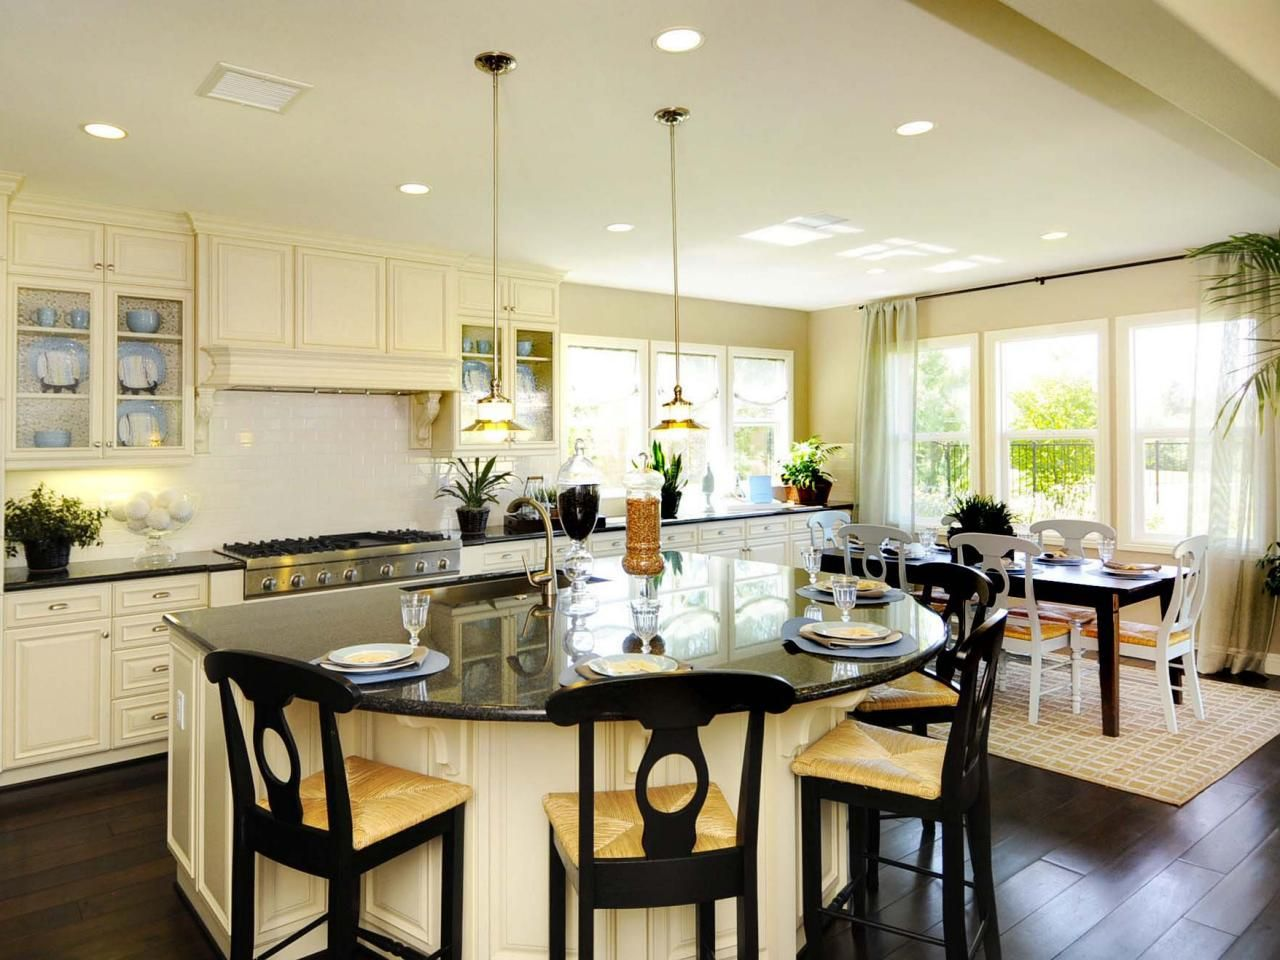 Kitchen Islands: Beautiful, Functional Design Options | Hgtv ...